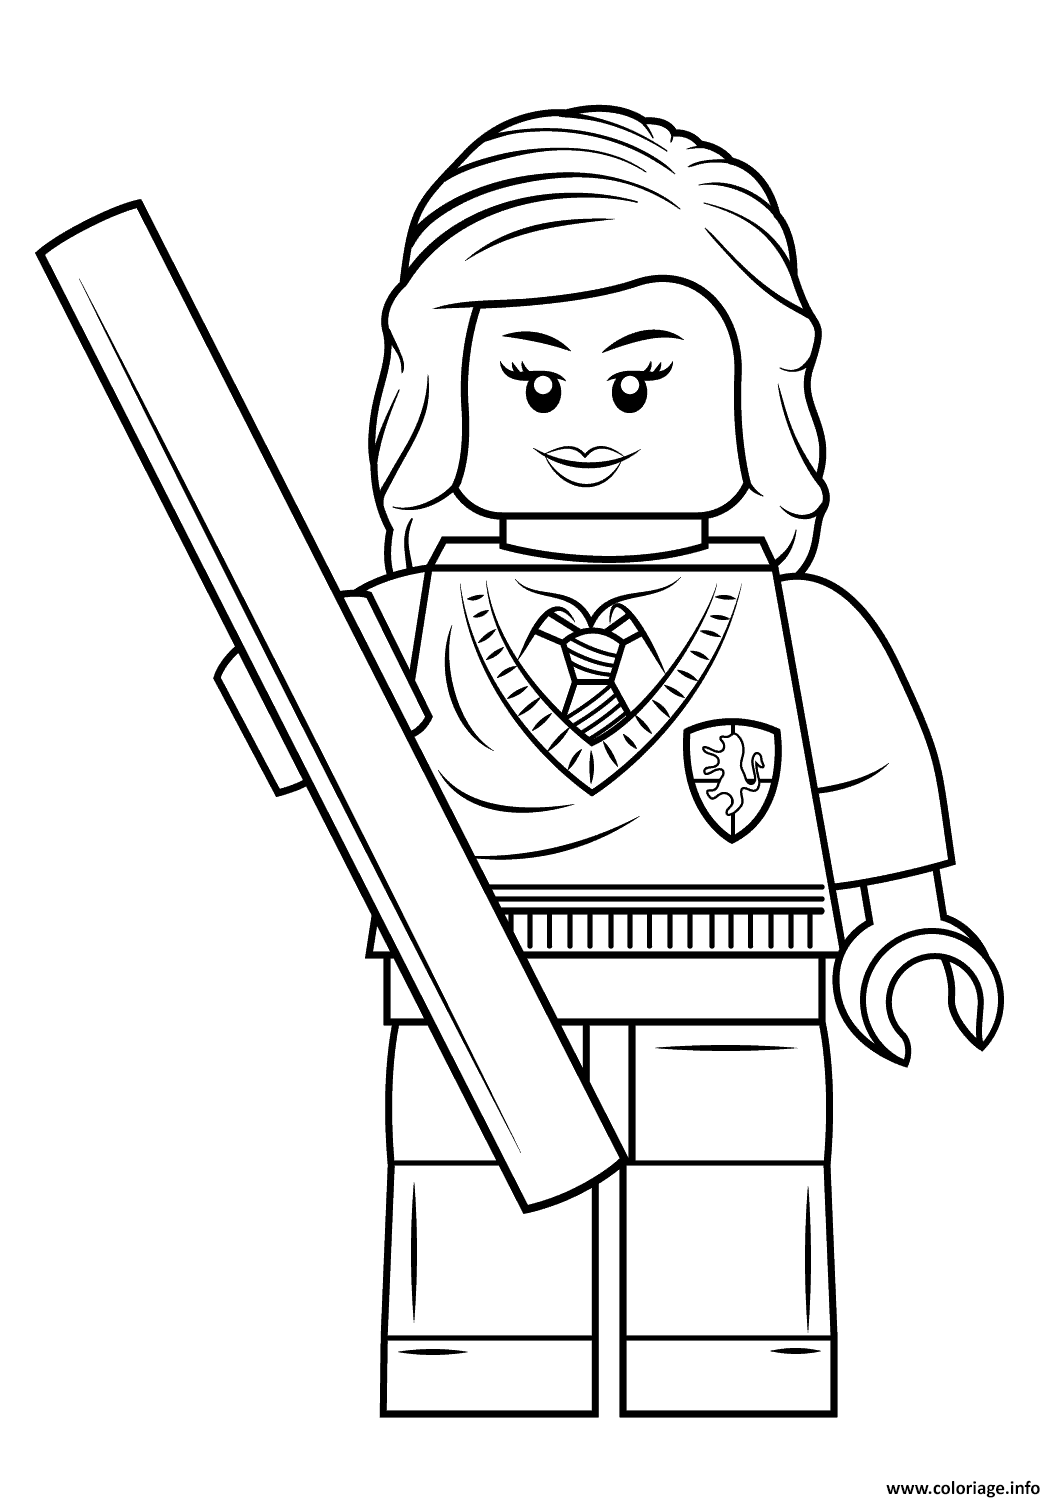 Coloriage En Ligne Harry Potter Gratuit.Coloriage Lego Hermione Granger Harry Potter Dessin